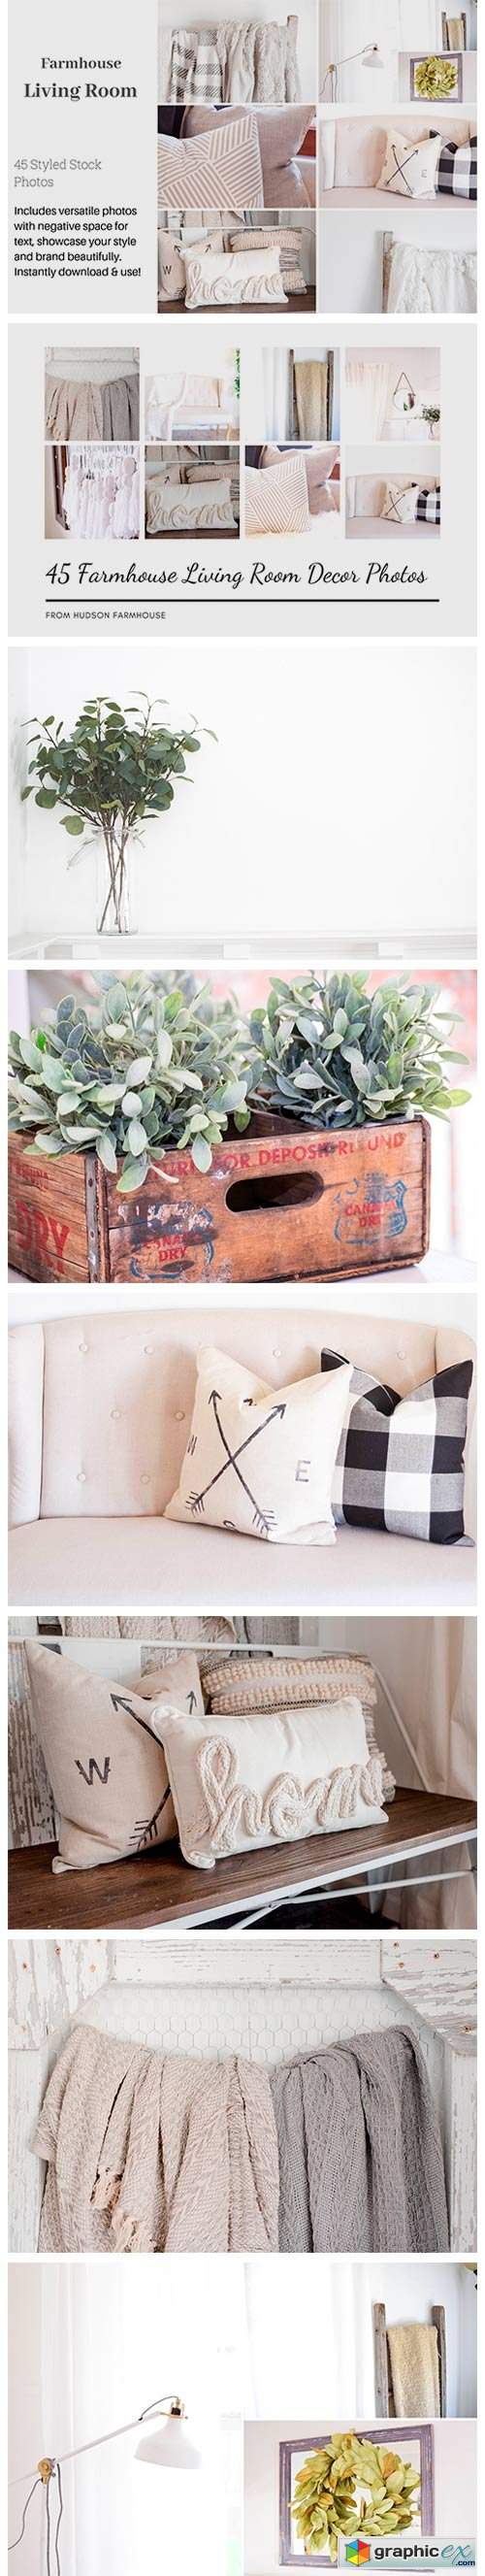 Farmhouse Living Room Photo Bundle